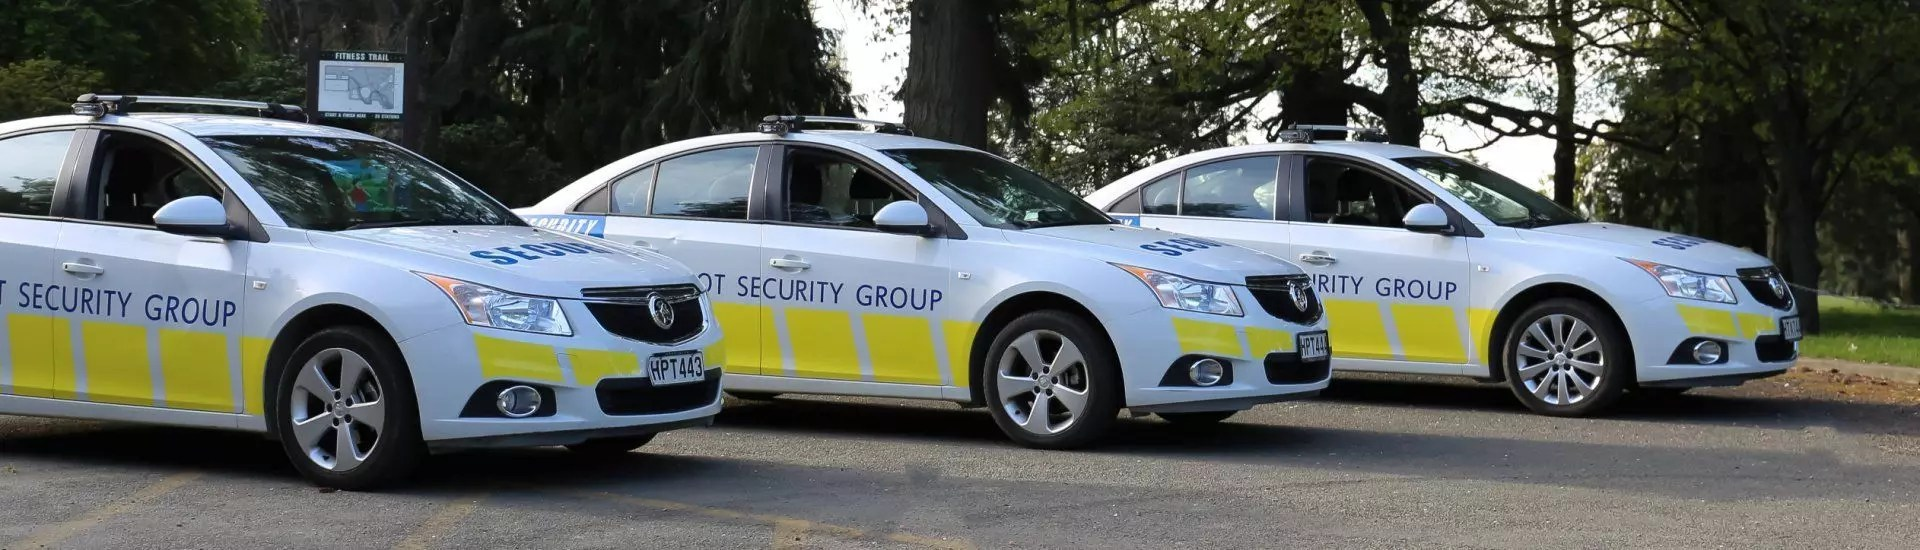 Home - Talbot Security Group Canterbury